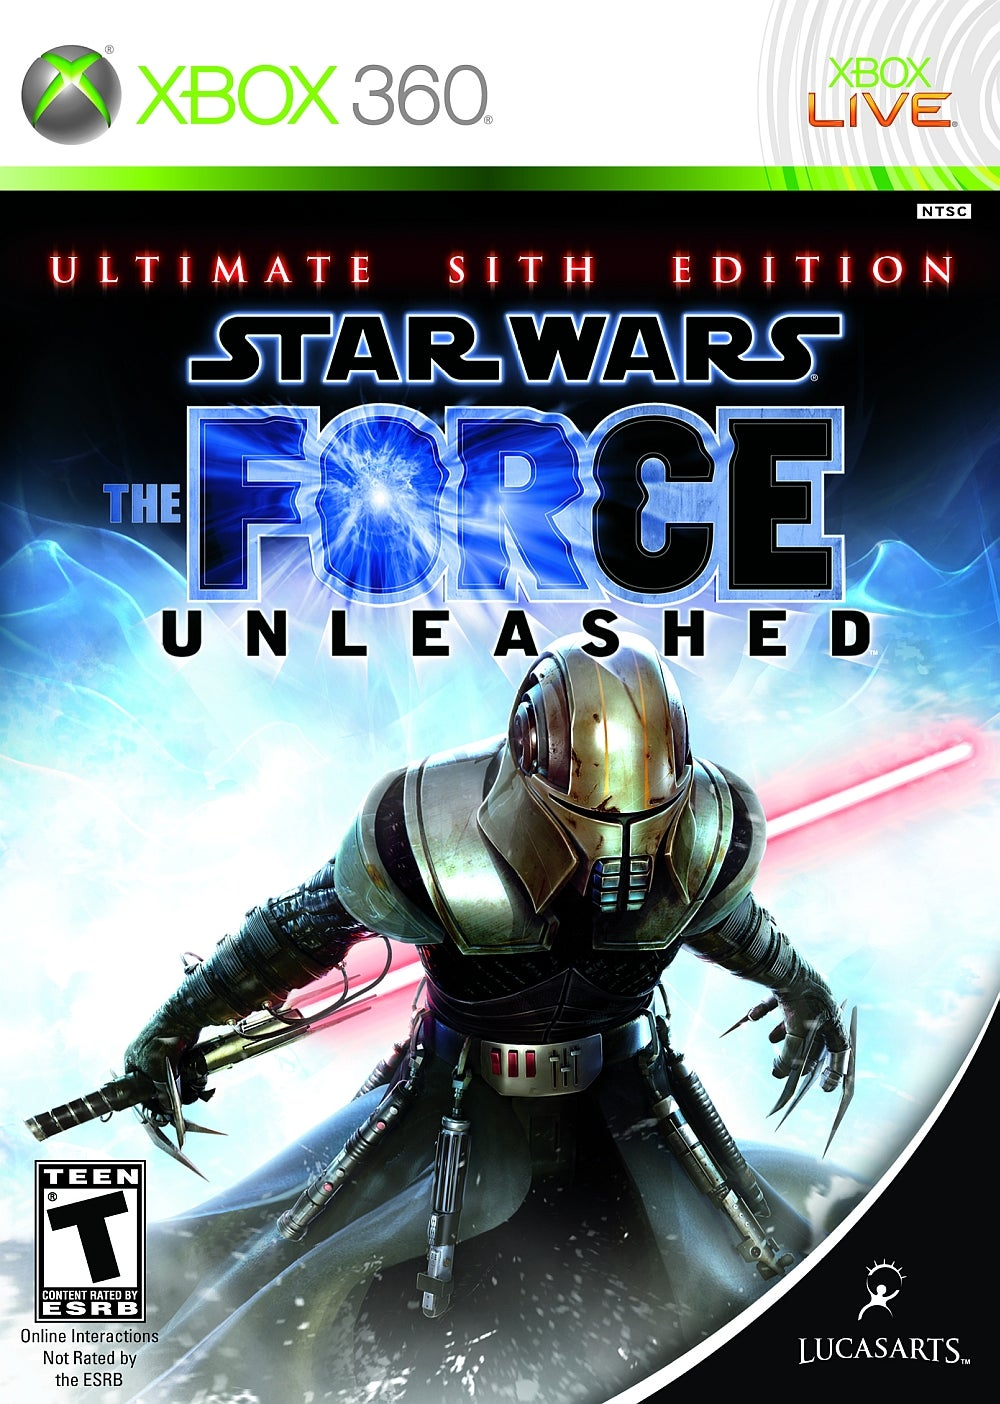 Star Wars The Force Unleashed Ultimate Sith Edition Xbox 360 IGN